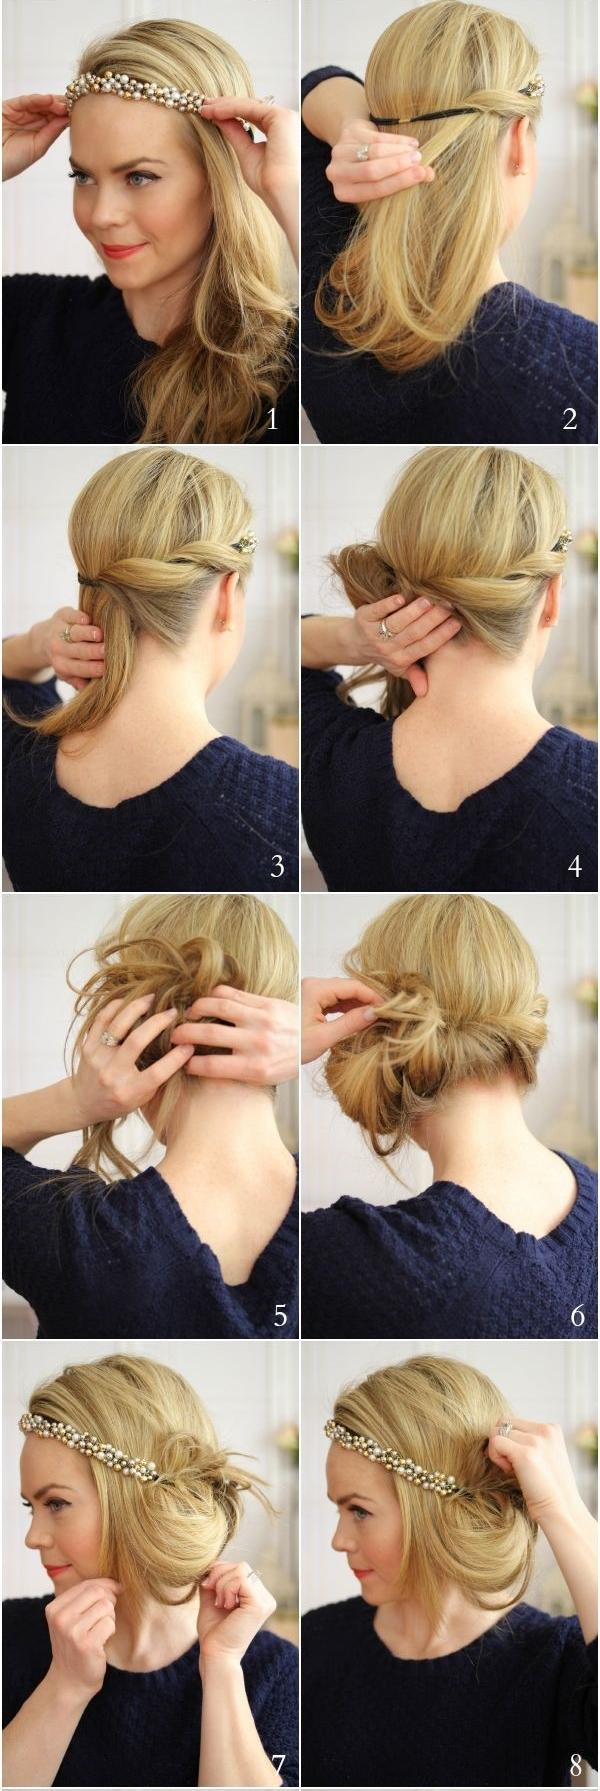 gatsby messy hairstyle step